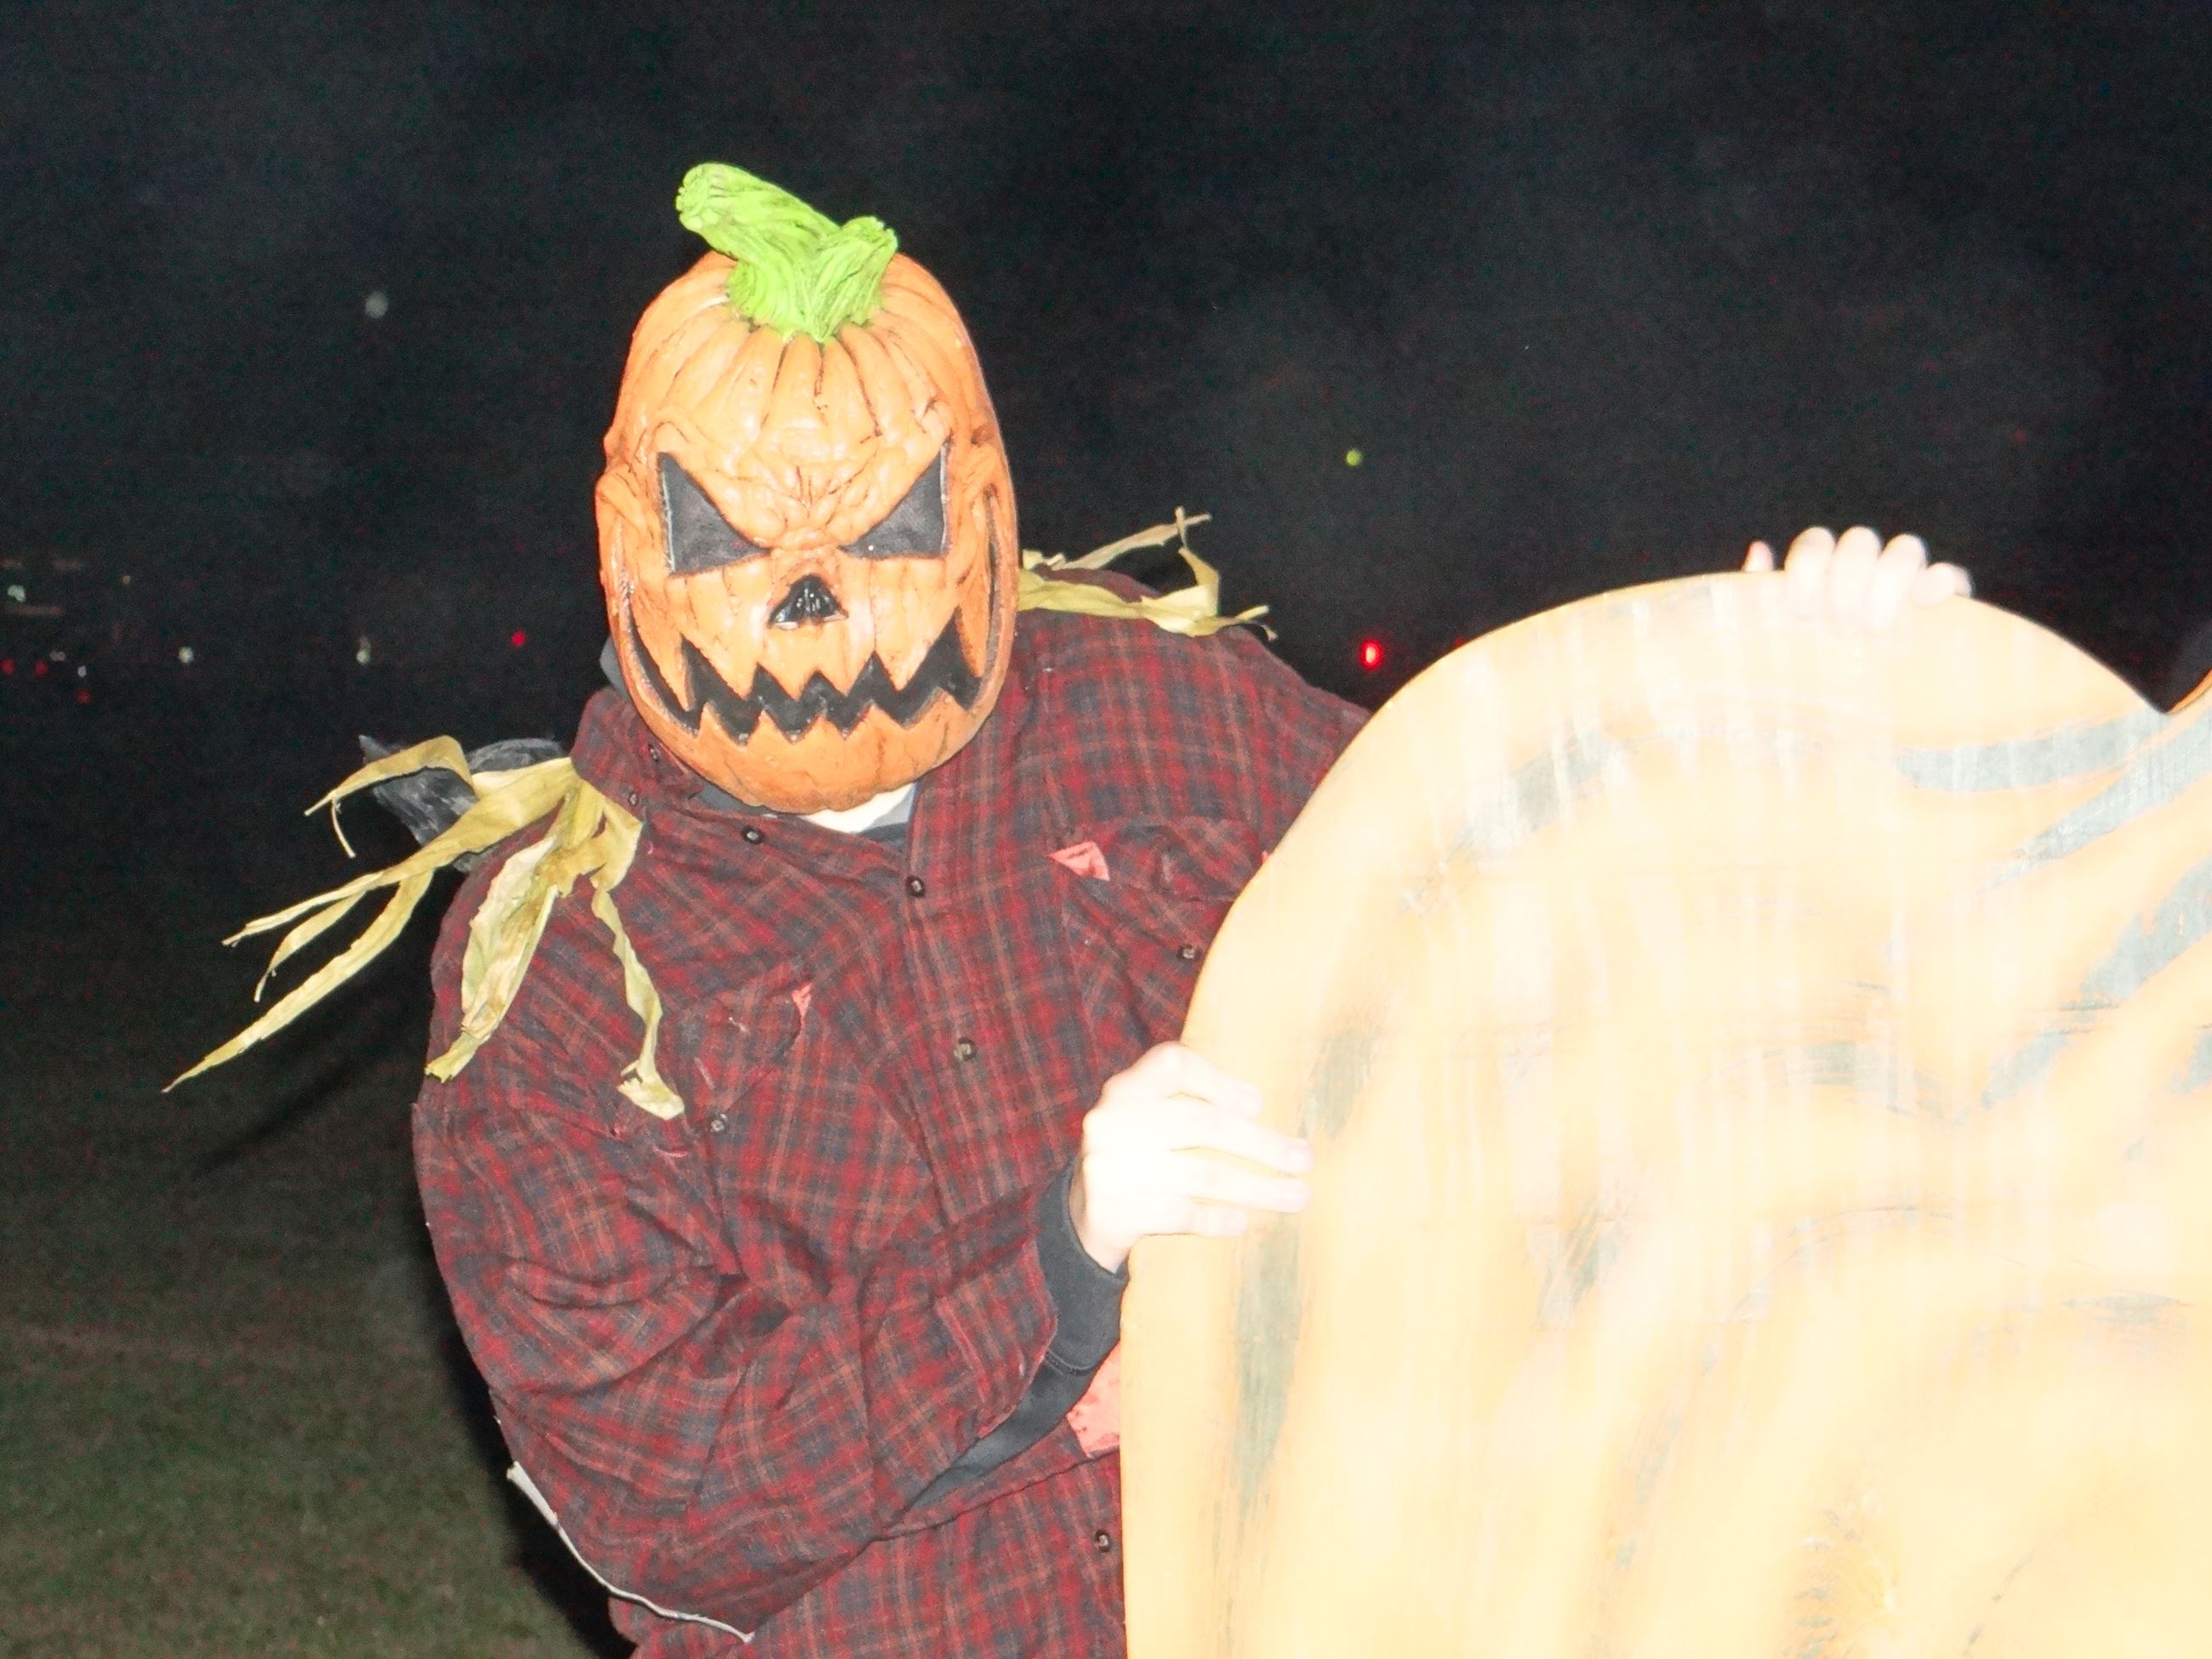 Pumpkin Man at Hobgoblin Hike